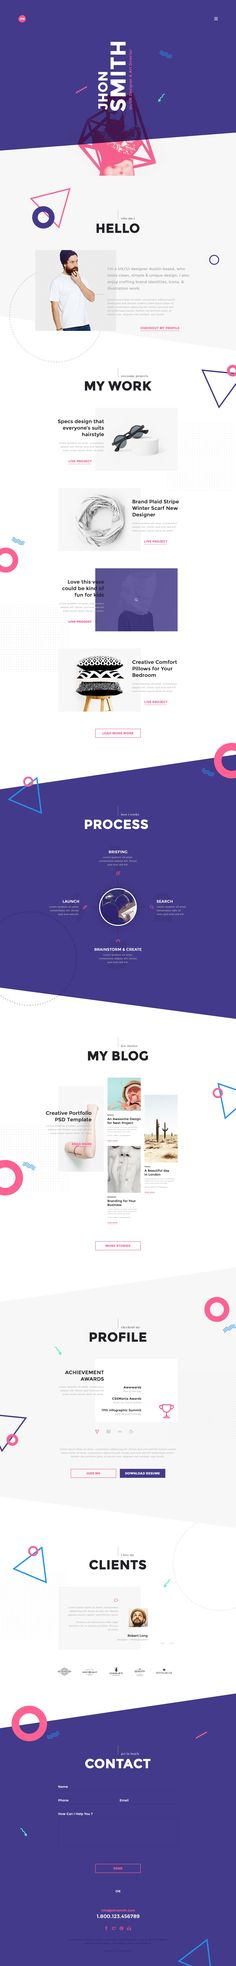 Website Design Me Creative Portfolio Web Design (Designer Unknown) Layout Design, Web Design Tips, Web Layout, Page Design, Diy Design, Design Trends, Design Ideas, Portfolio Webdesign, Web Portfolio